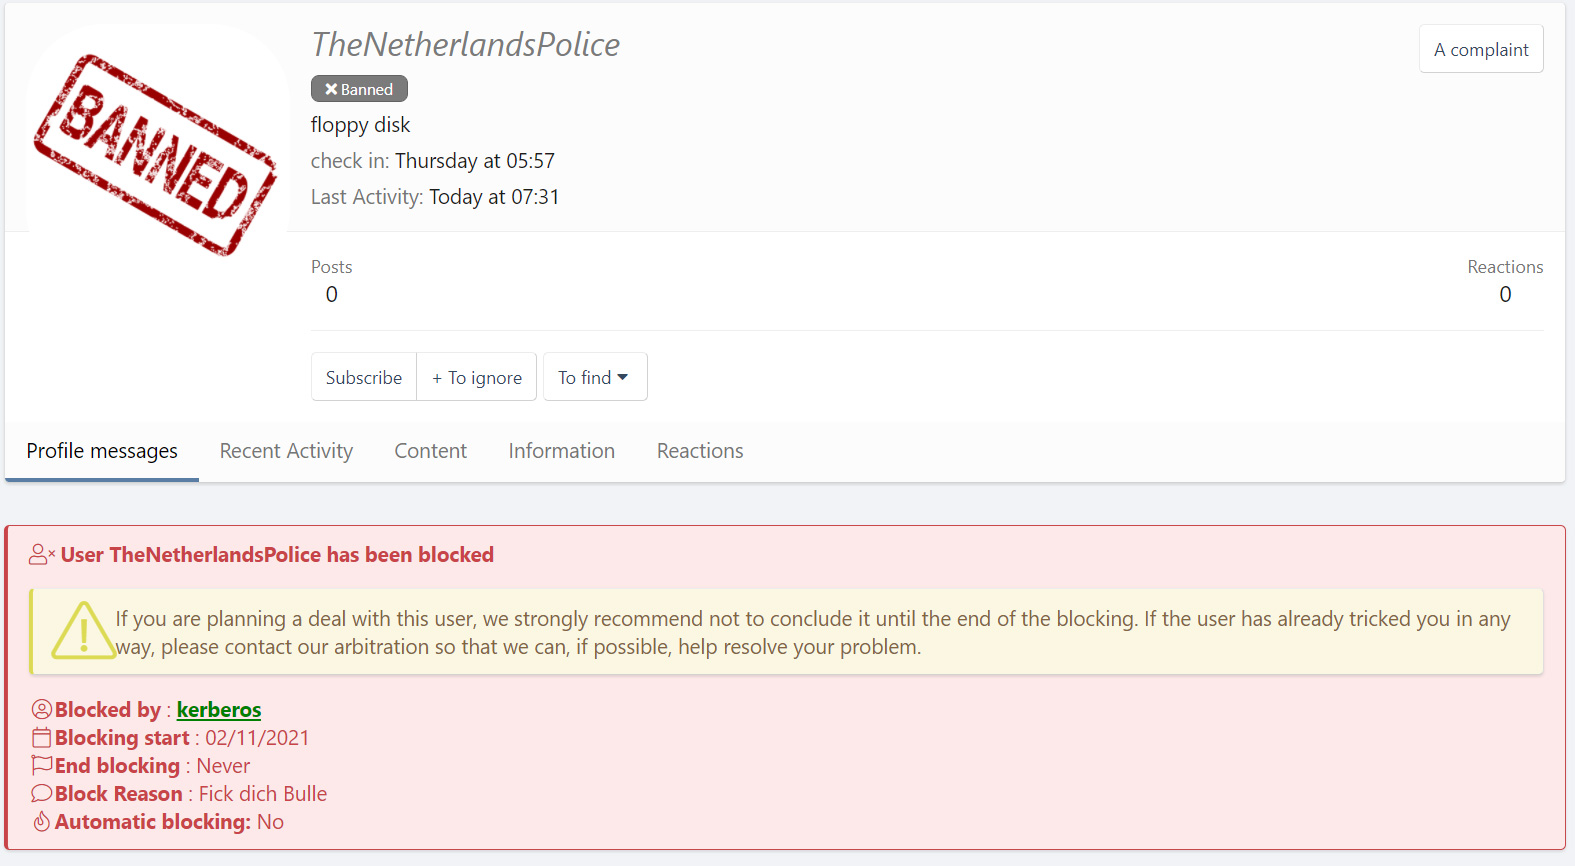 XSS warning to other members